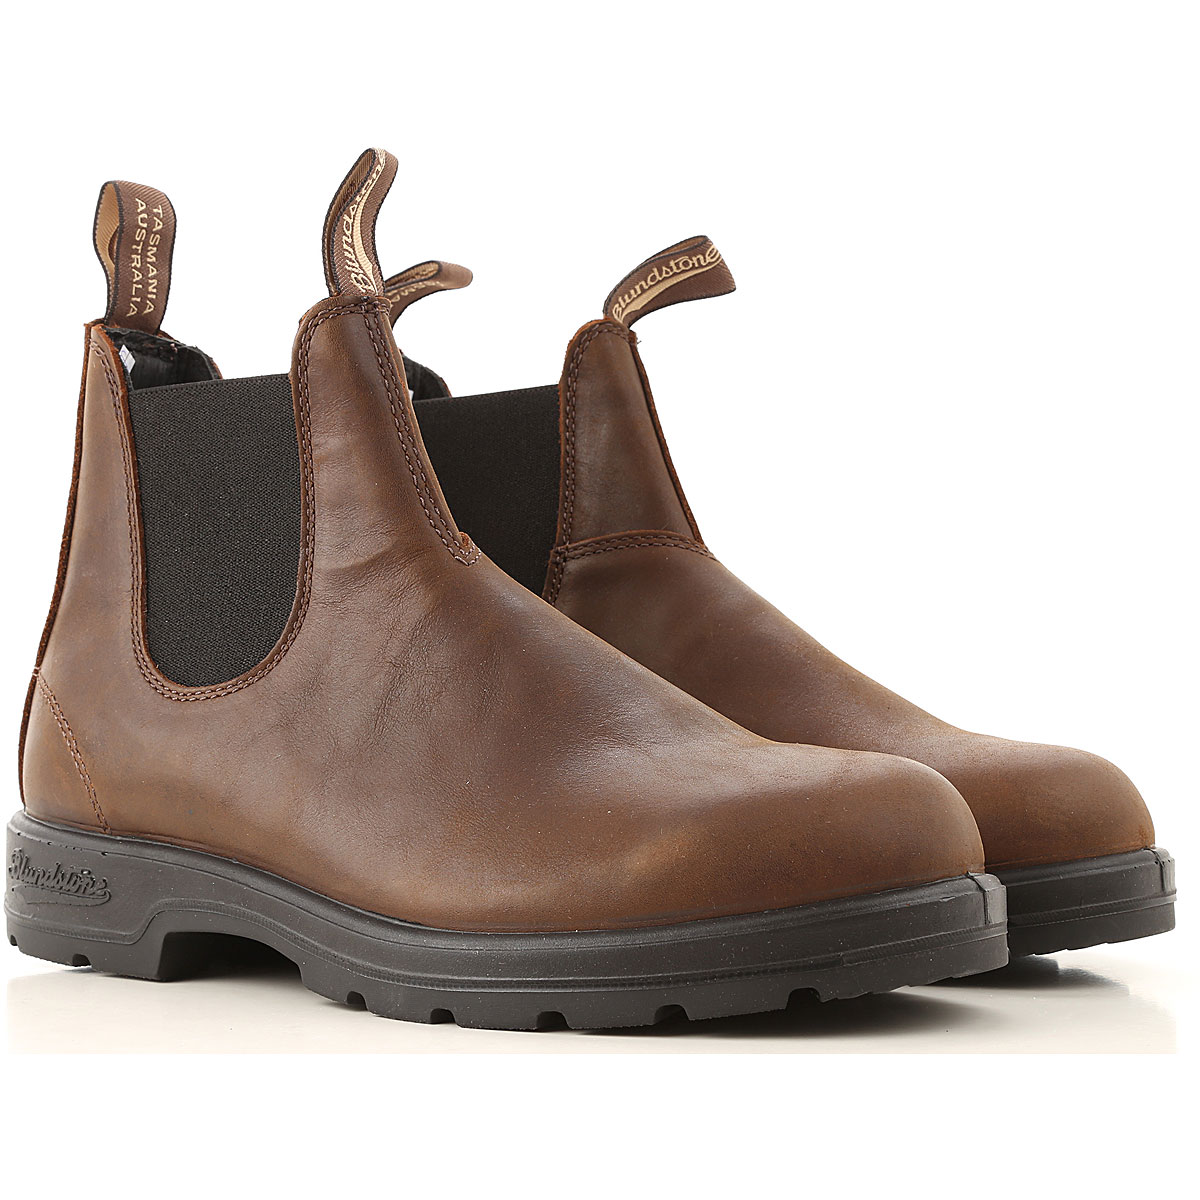 Blundstone Chelsea Boots for Men On Sale, Brown, Leather, 2019, 10.5 11 7.5 8 8.5